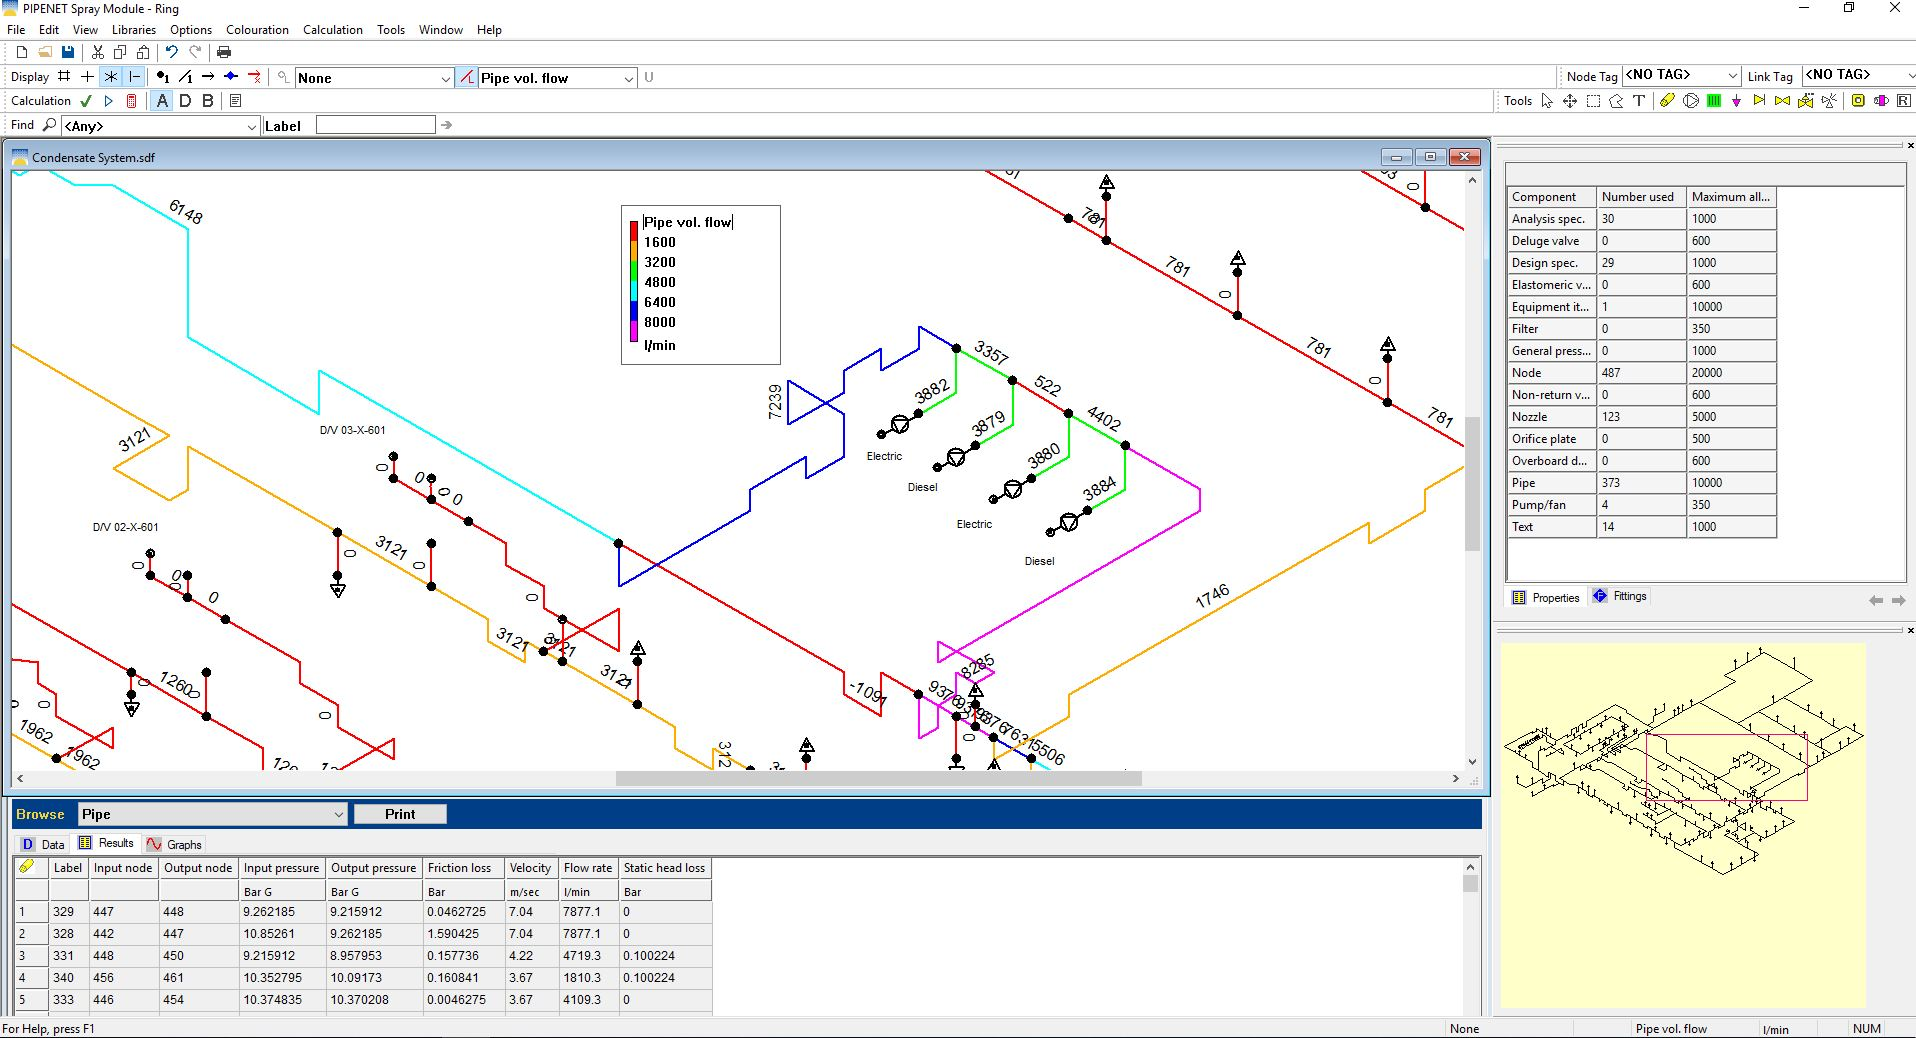 PIPENET Spray/Sprinkler software hydraulic analysis of